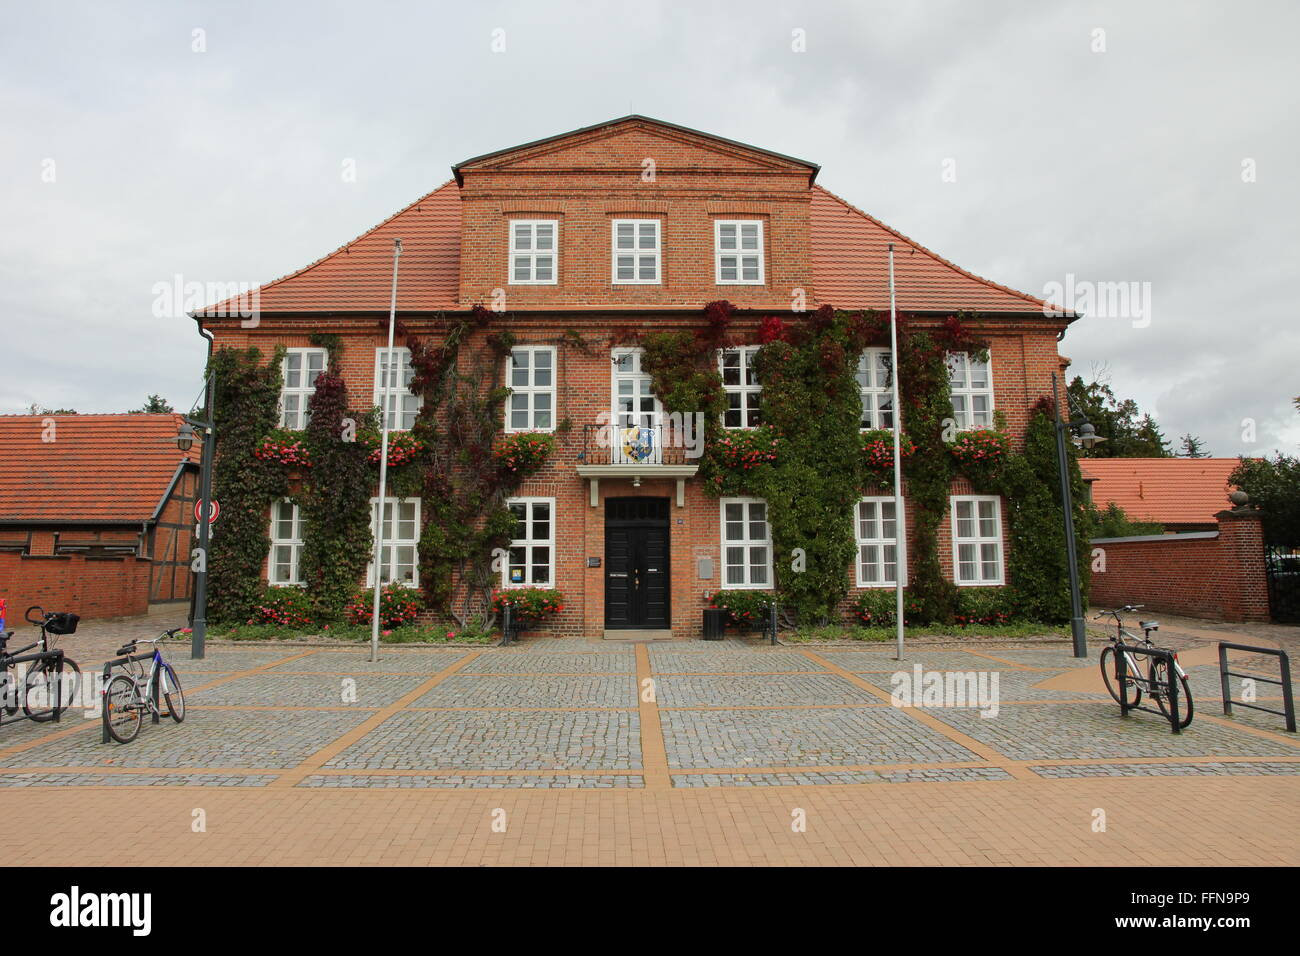 geography / travel, Germany, Mecklenburg-West Pomerania, Ludwigslust, city hall, Additional-Rights-Clearance-Info - Stock Image